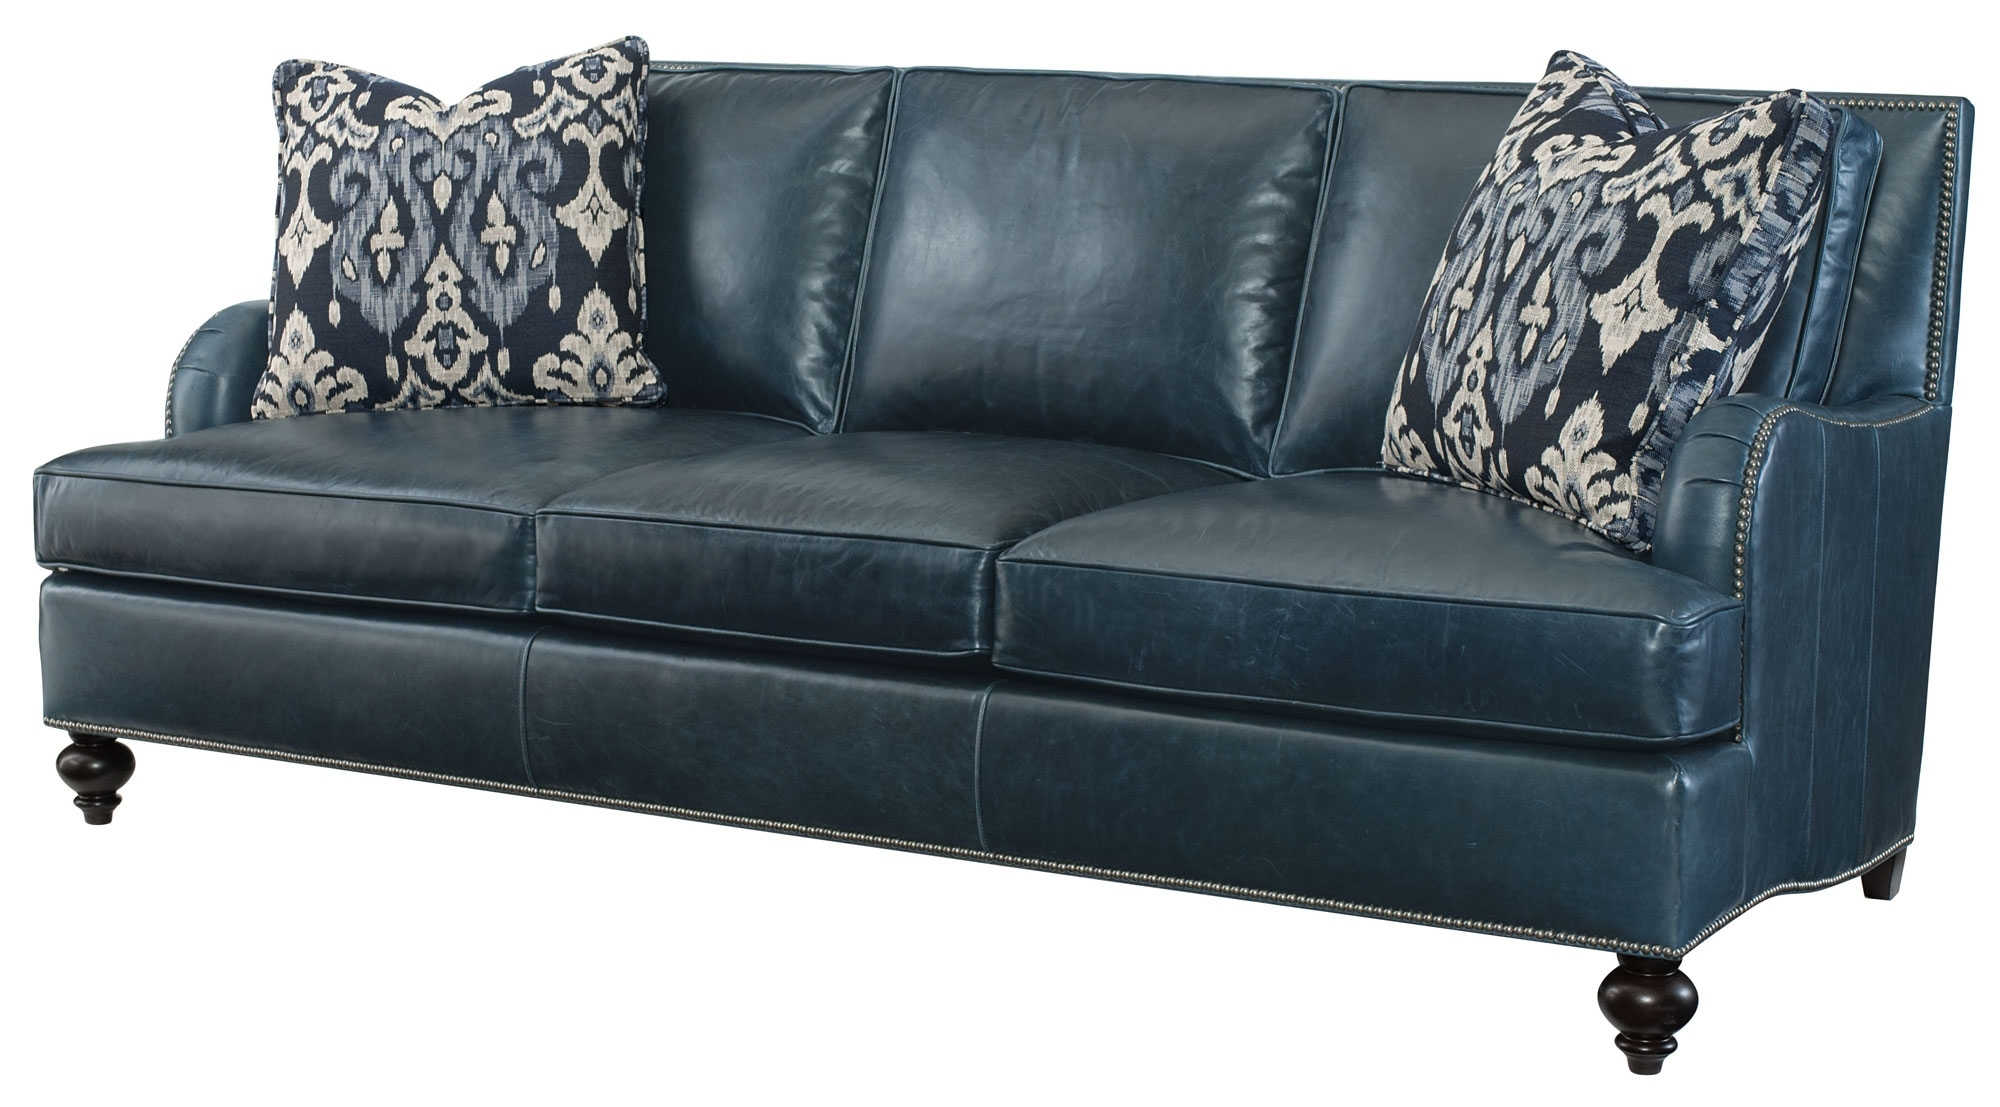 Dillards Sectional Sofas Throughout Famous Chocolate Leather Sofa (View 19 of 20)